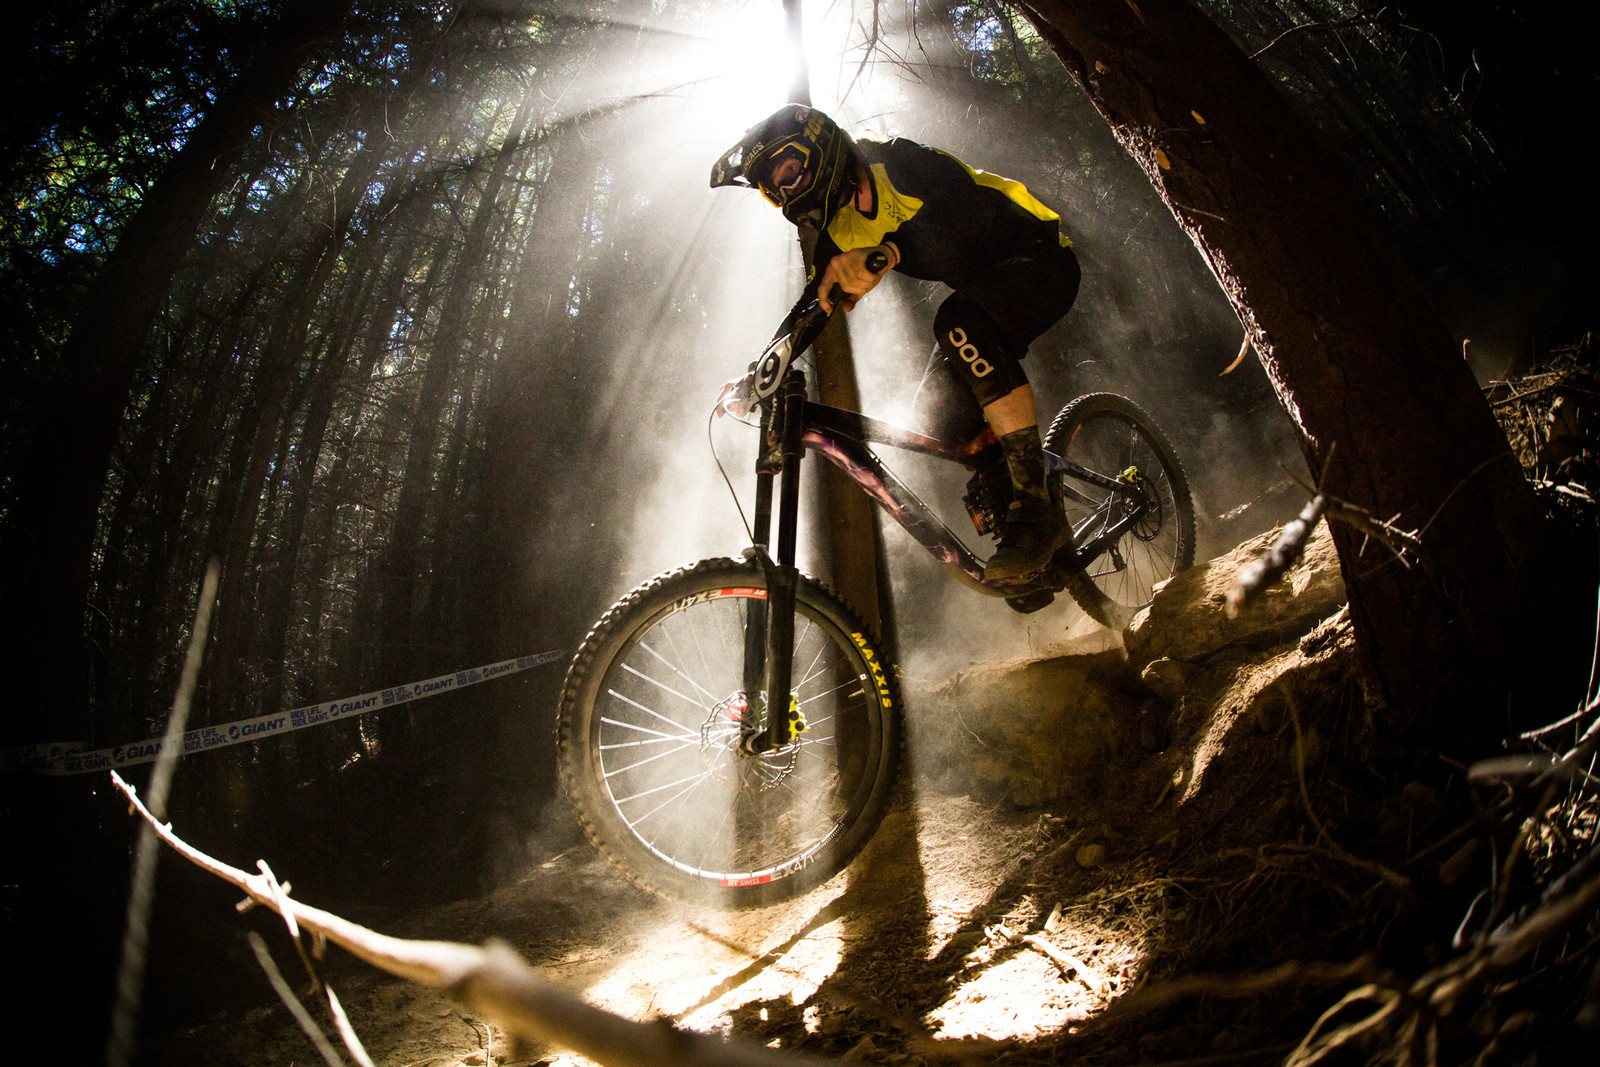 Homegrown NZ Downhill - Vertigo Bikes Ride More DH Series Race 1 - Homegrown NZ Downhill - Vertigo Bikes Ride More DH Series Race 1 - Mountain Biking Pictures - Vital MTB